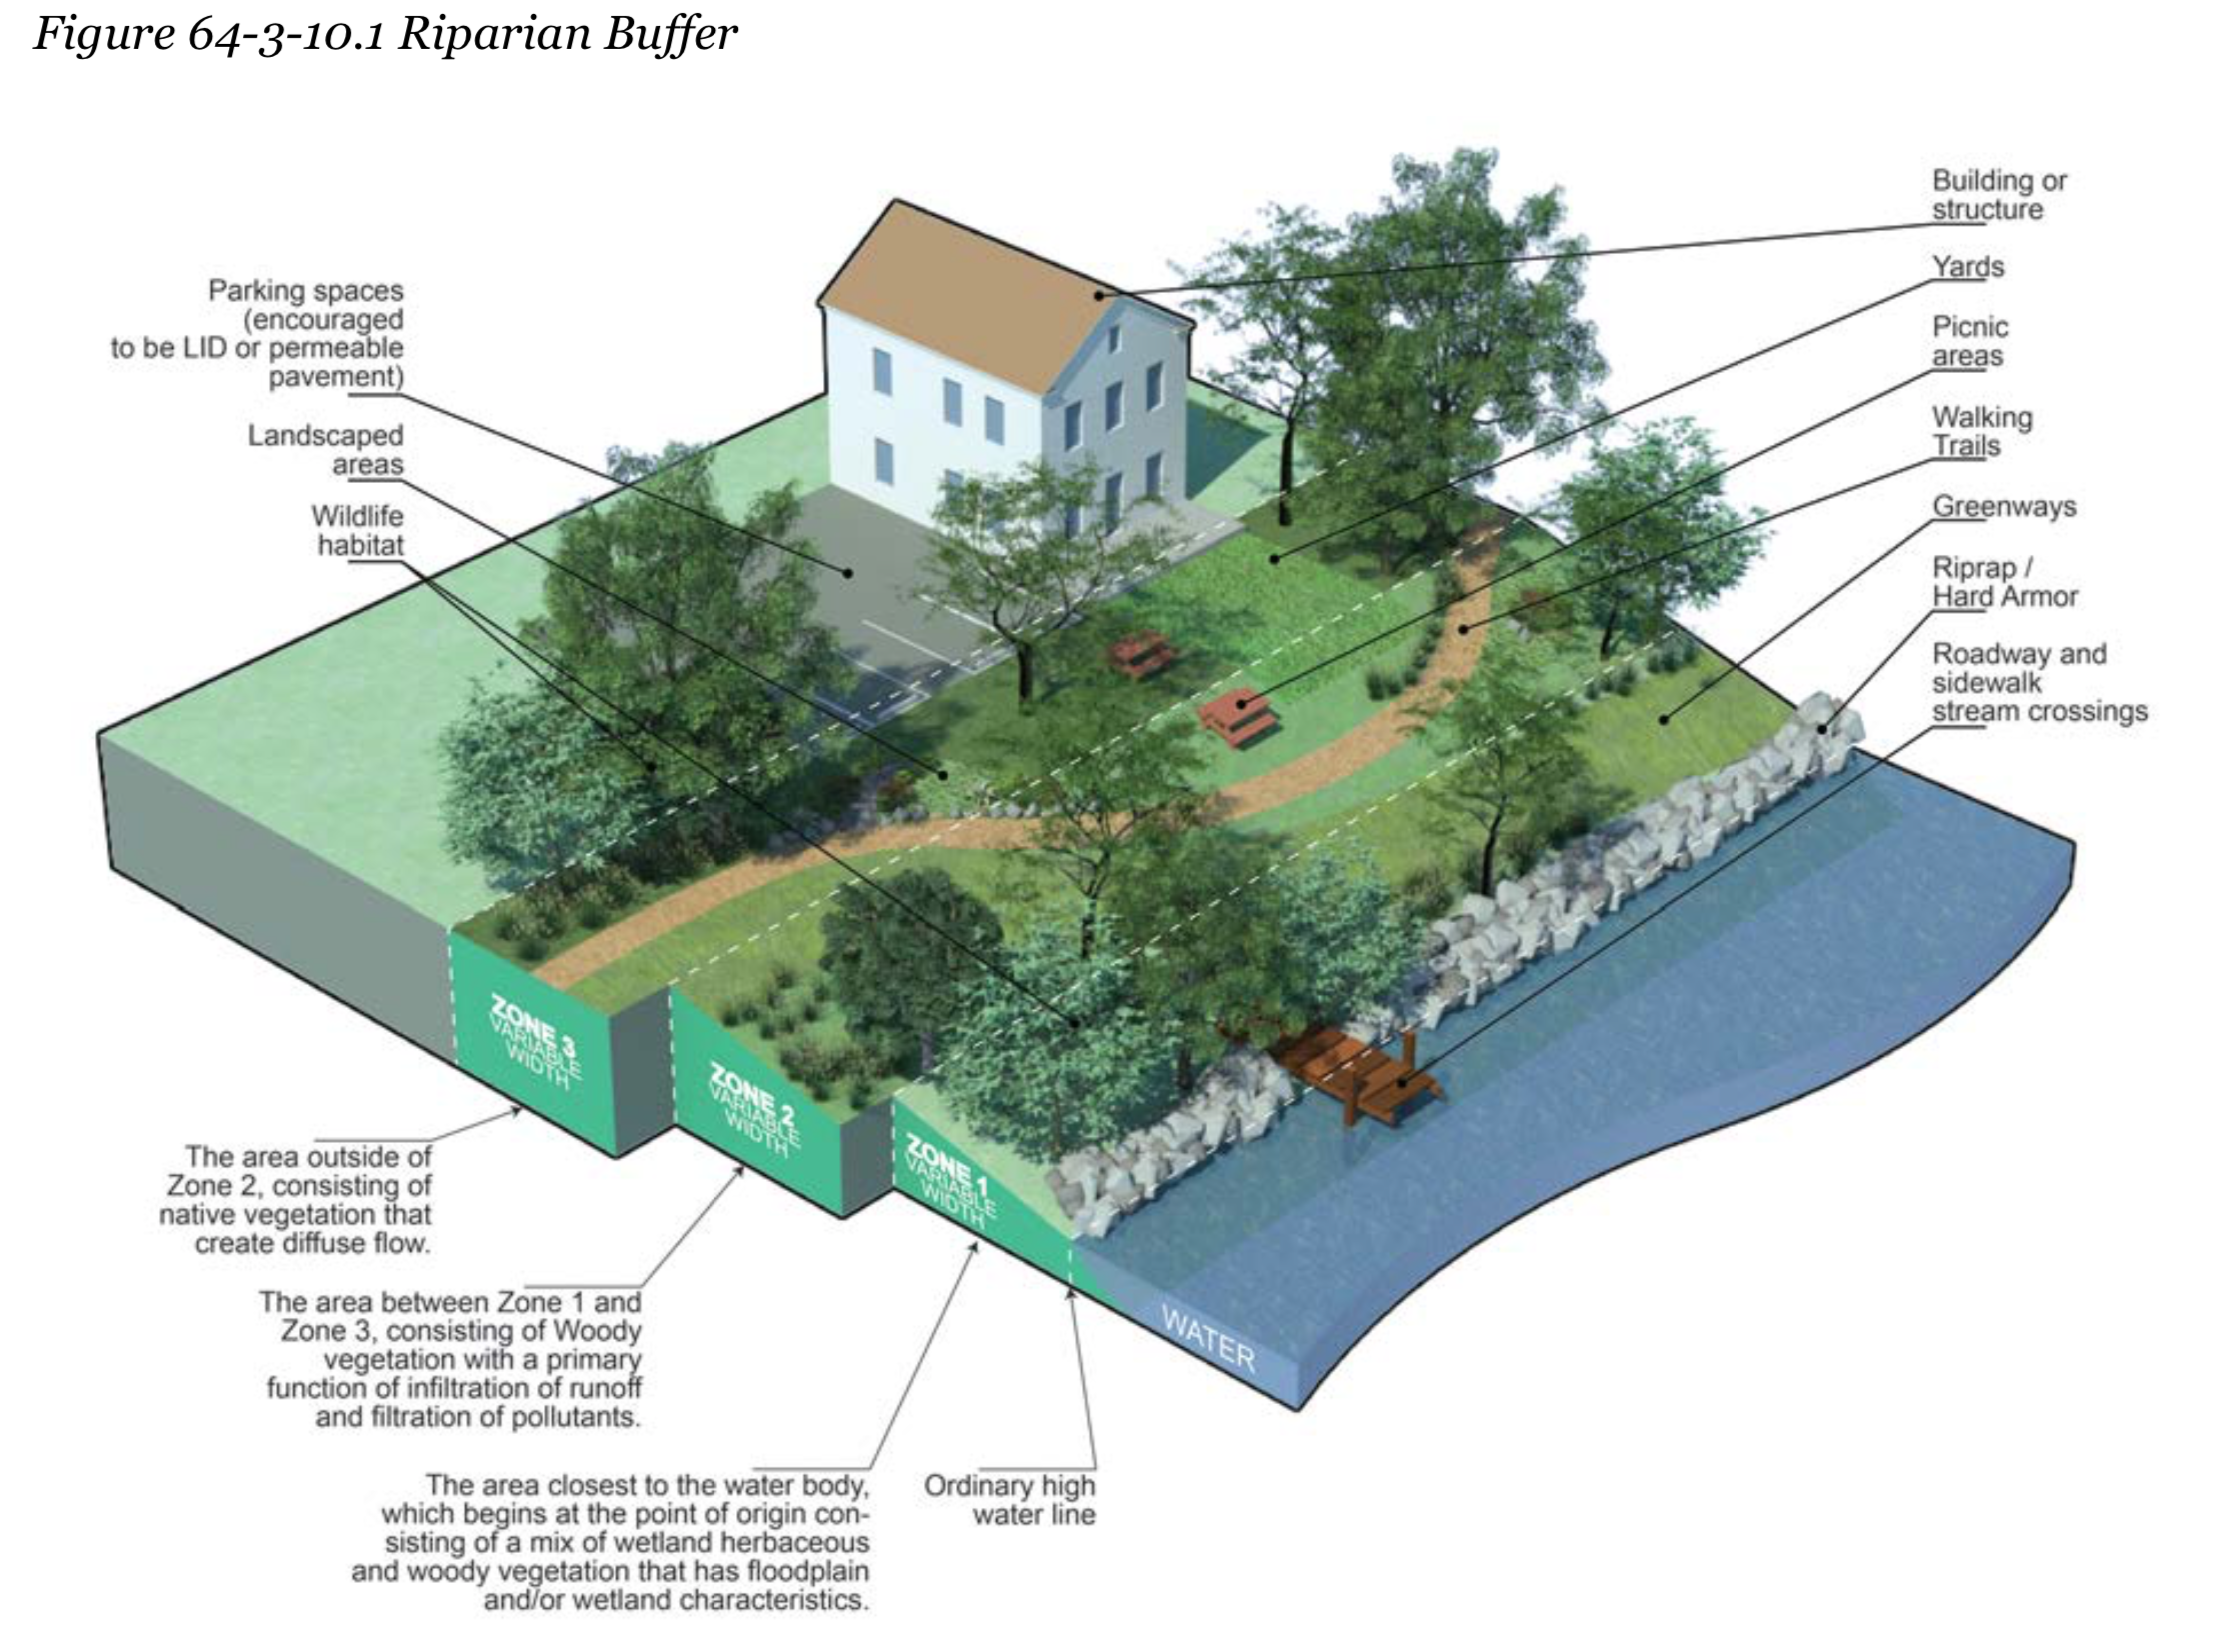 A diagram from the UDC illustrating a Riparian Buffer